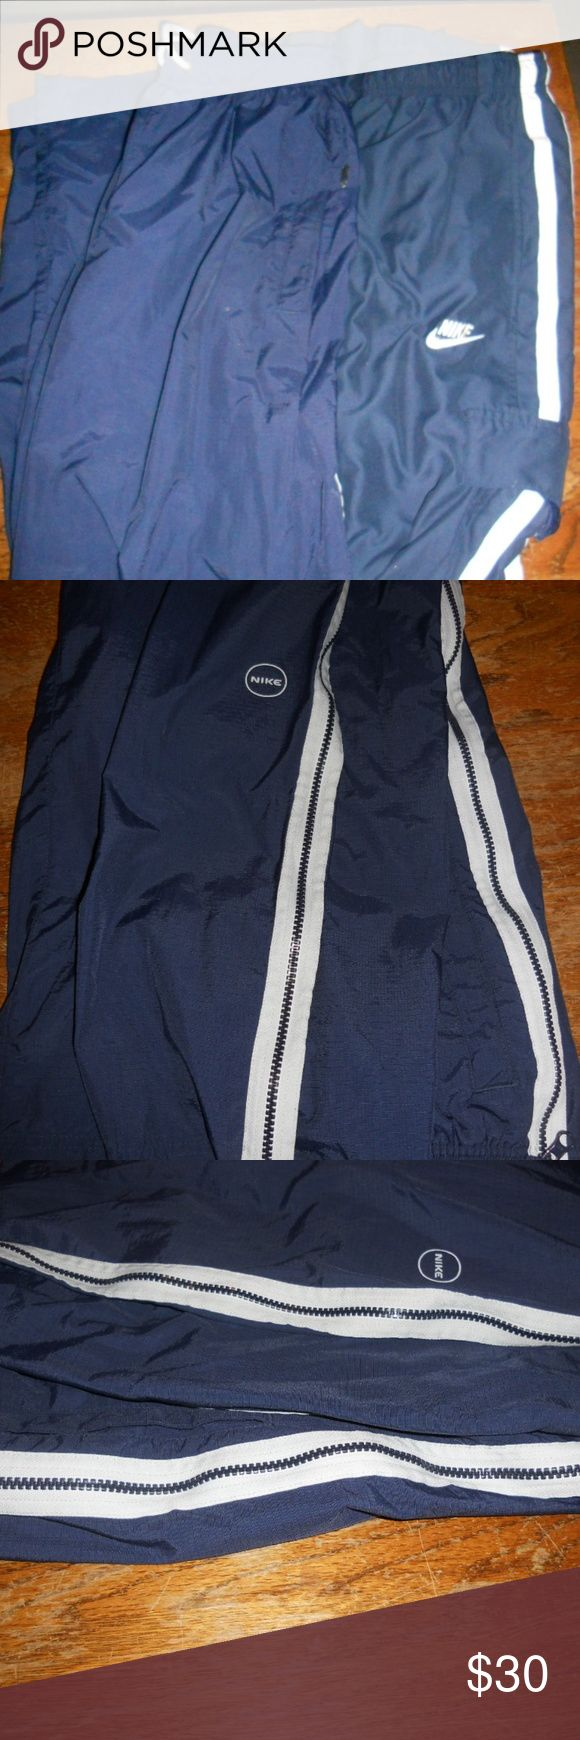 2 NIKE Men's Blue Athletic Pants Size Medium 2 NIKE Men's Draw-string Blue Track Running Pants Zippered Leg Medium One pair is 100% Nylon and has zippers the length of both legs. The other pair is 100% polyester. Both pairs are a size medium and have drawstrings. Both are in excellent condition. Nike Pants Sweatpants & Joggers